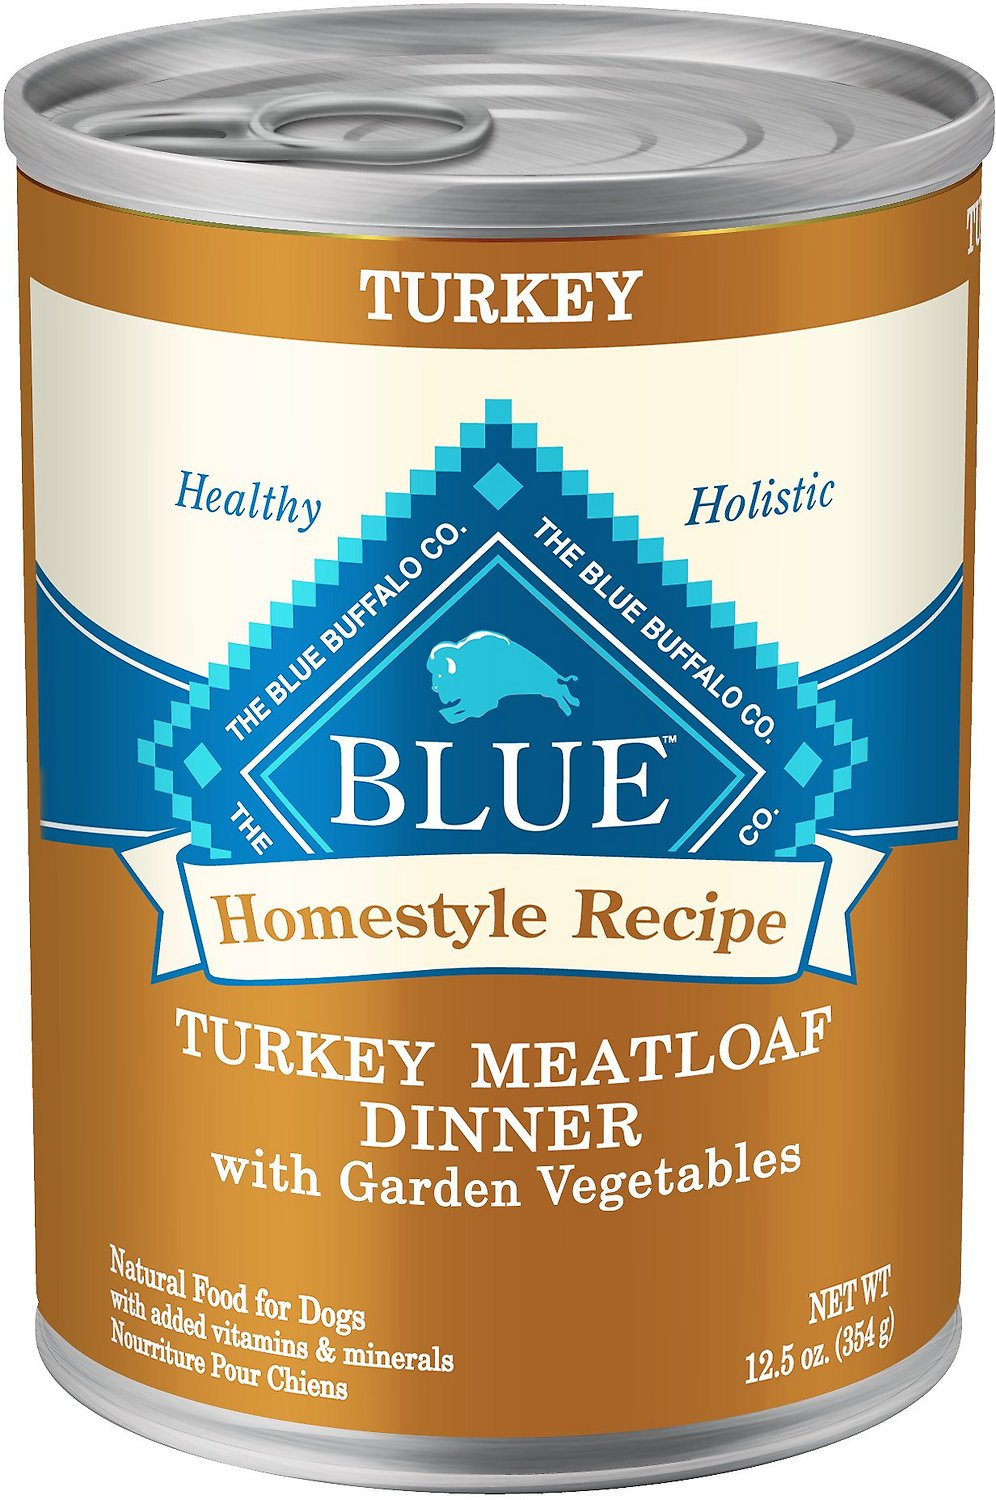 Blue Buffalo Homestyle Recipe Turkey Meatloaf Dinner with Garden Vegetables Canned Dog Food, 12.5-oz